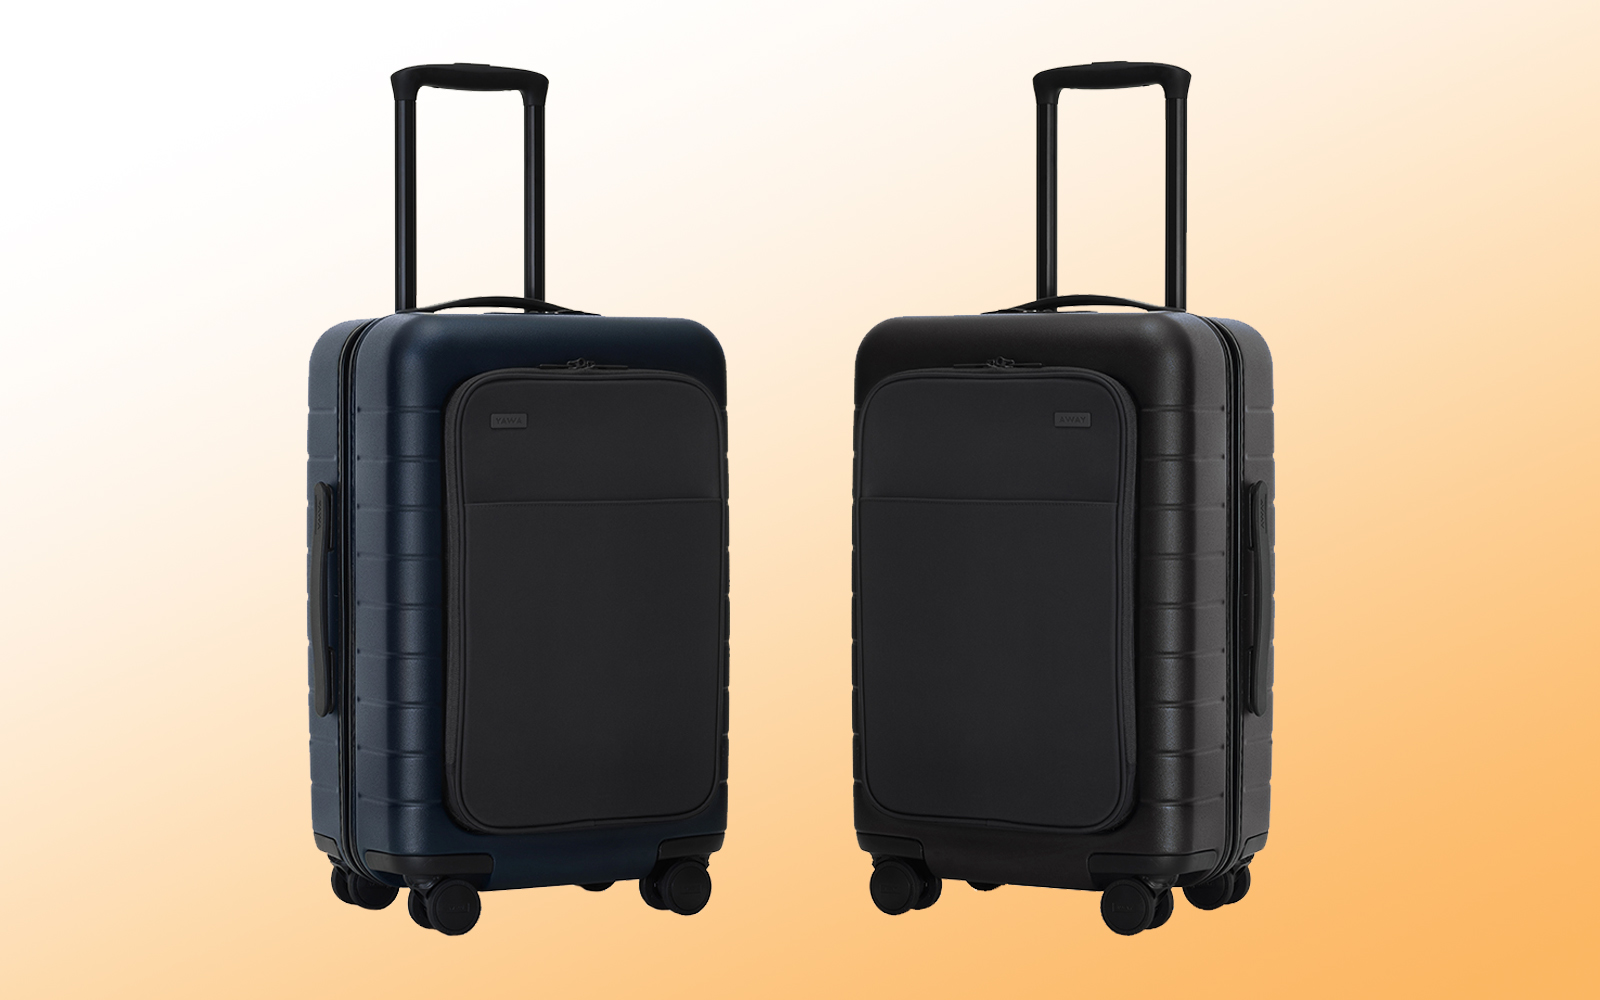 Away Just Added a Front Pocket to Its Best-selling Hardside Suitcase and We're Out of Reasons Not to Buy One